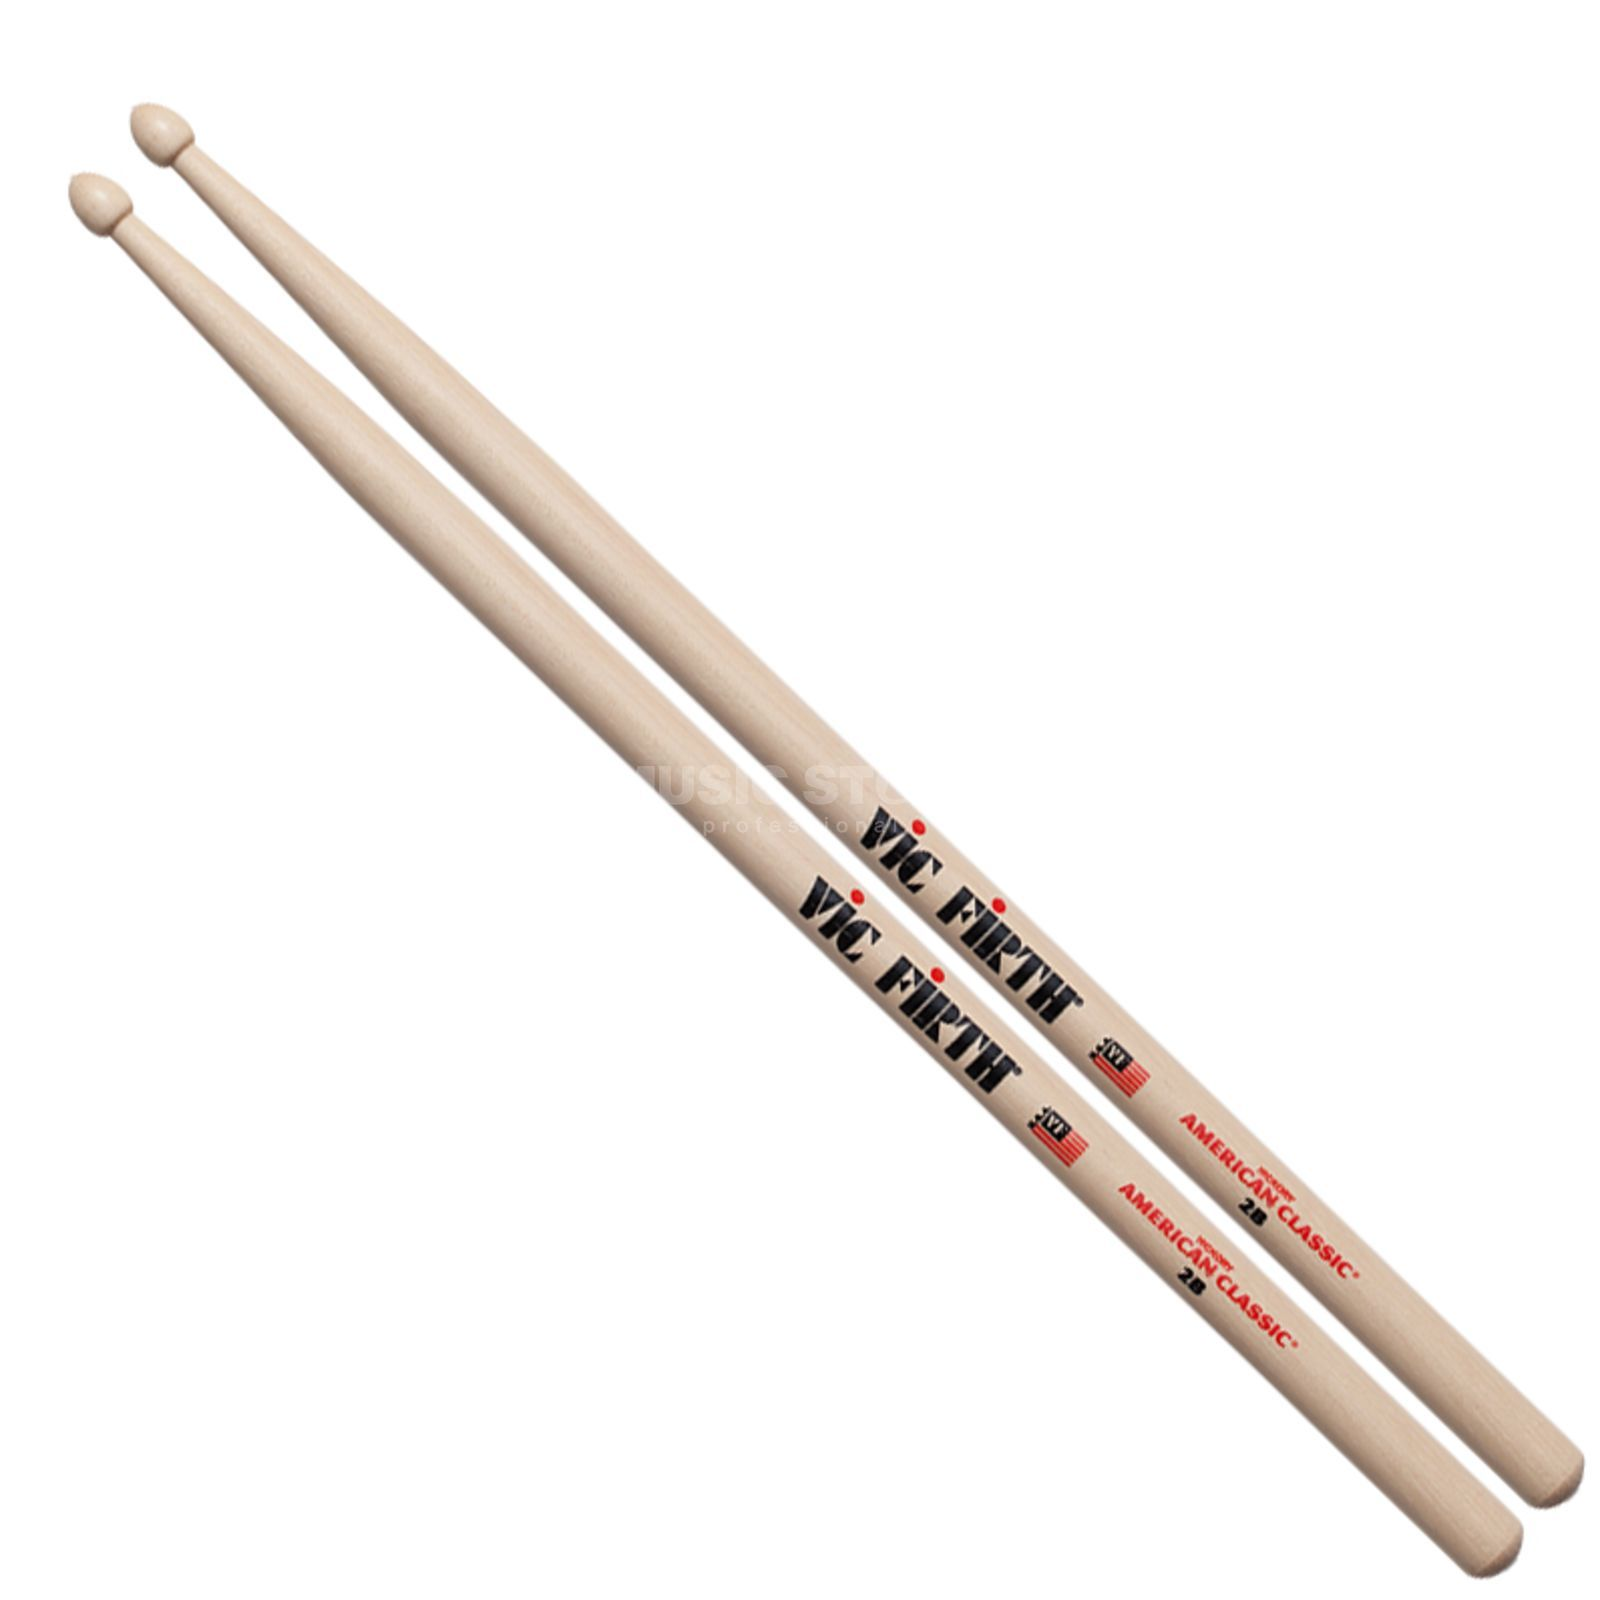 Vic-Firth 2B Sticks, American Classic, Wood Tip Produktbillede